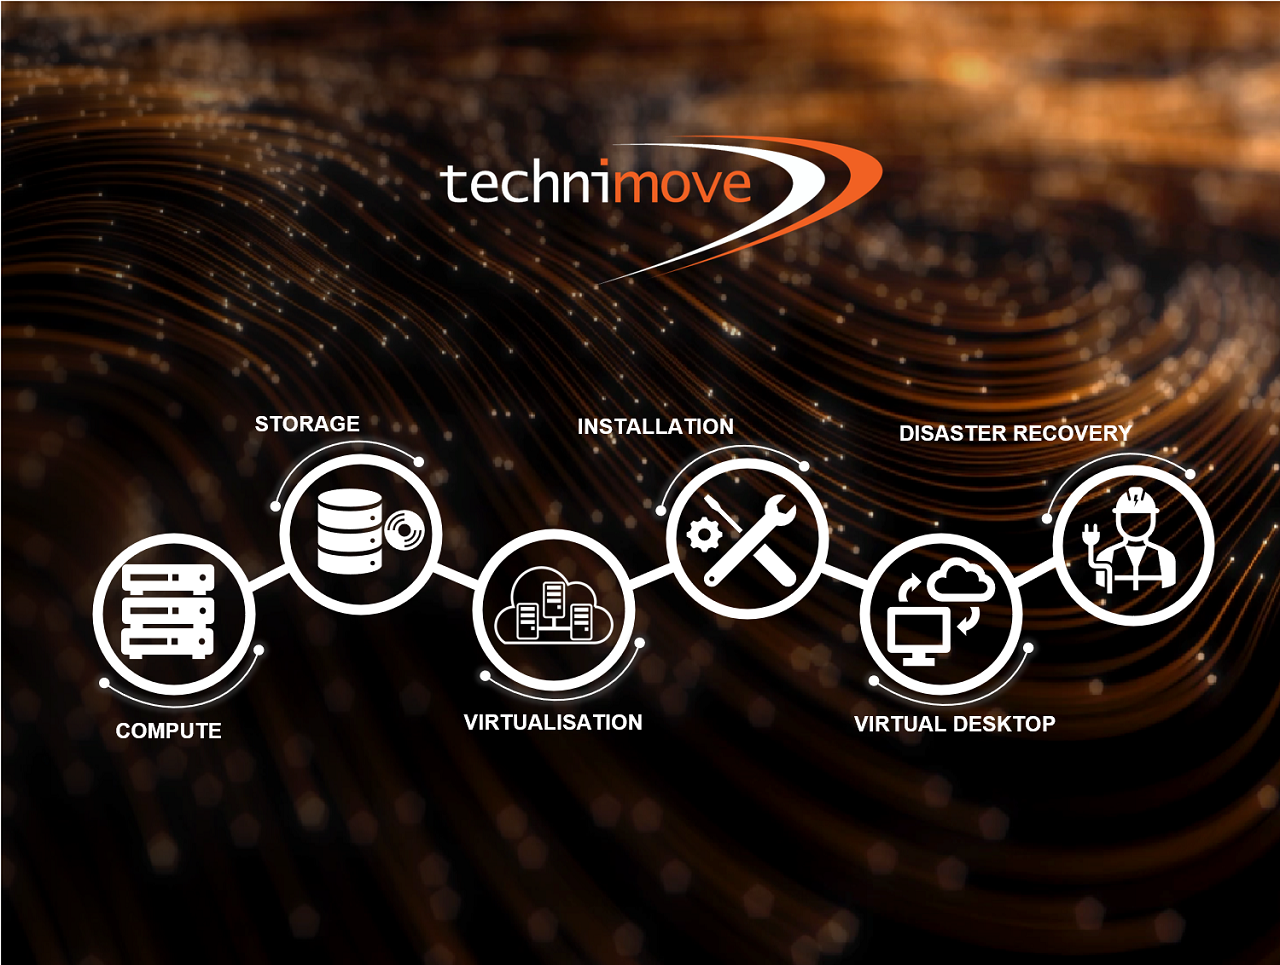 Technimove Introduces Professional Services focused on Digital Transformation